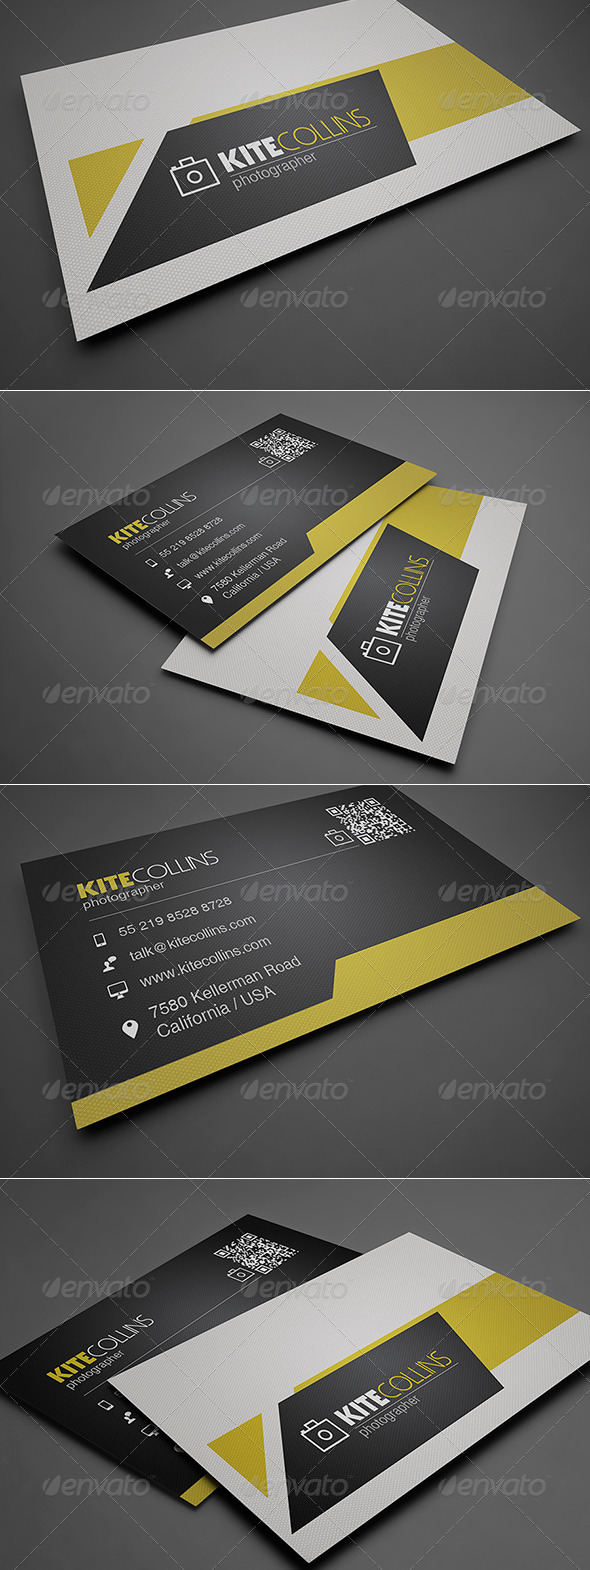 GraphicRiver Simple Business Card 8568359